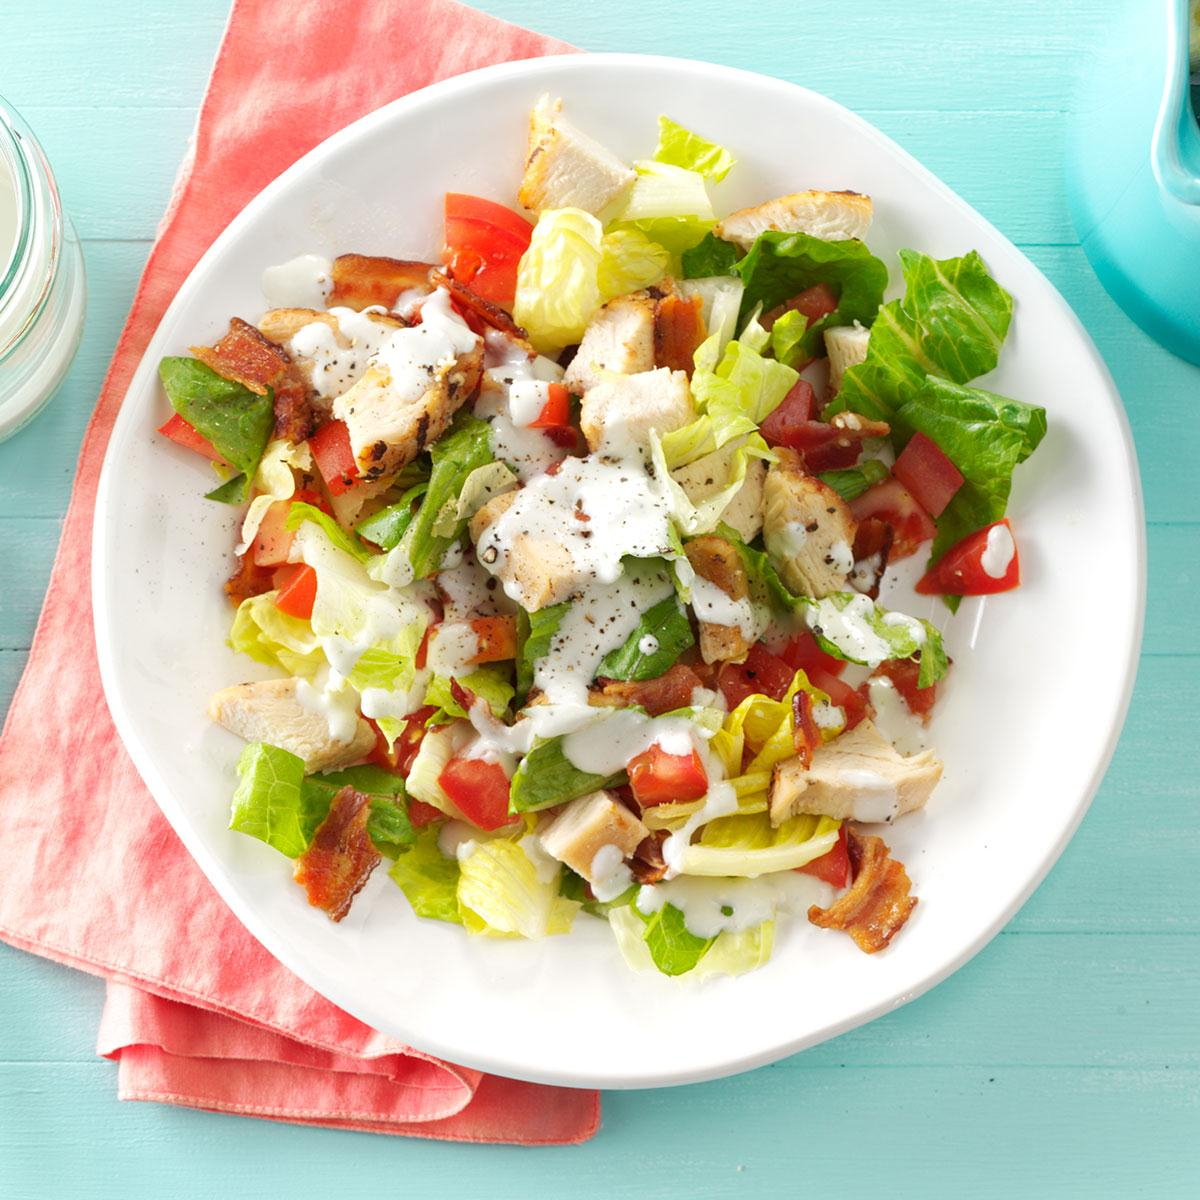 Bacon Chicken Chopped Salad Recipe How To Make It Taste Of Home